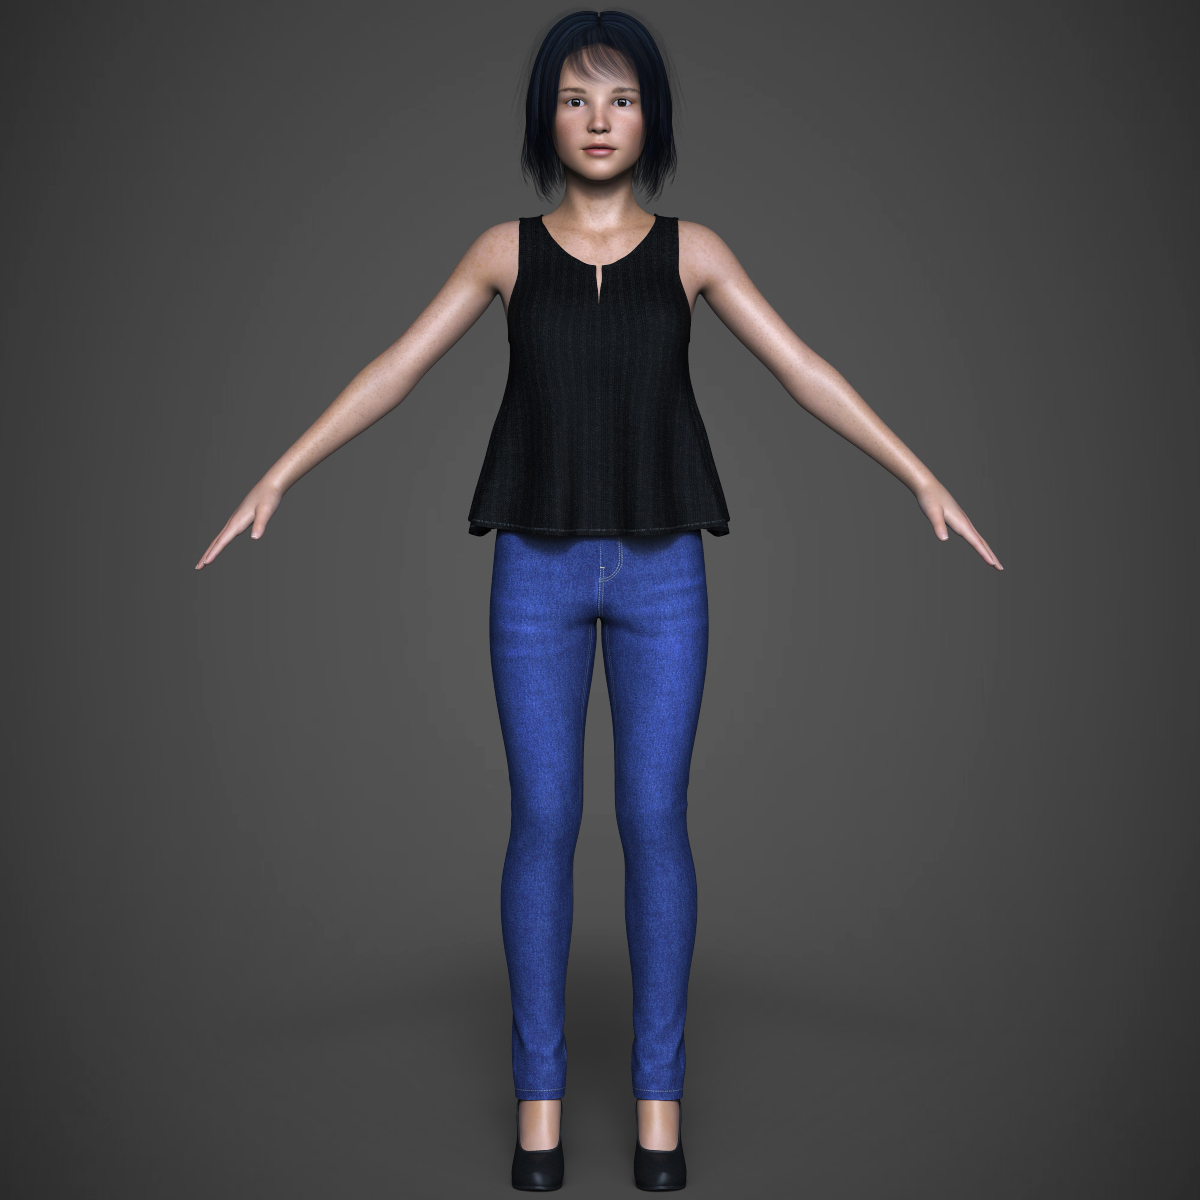 beautiful teen girl 3d model max fbx c4d ma mb texture obj 252311